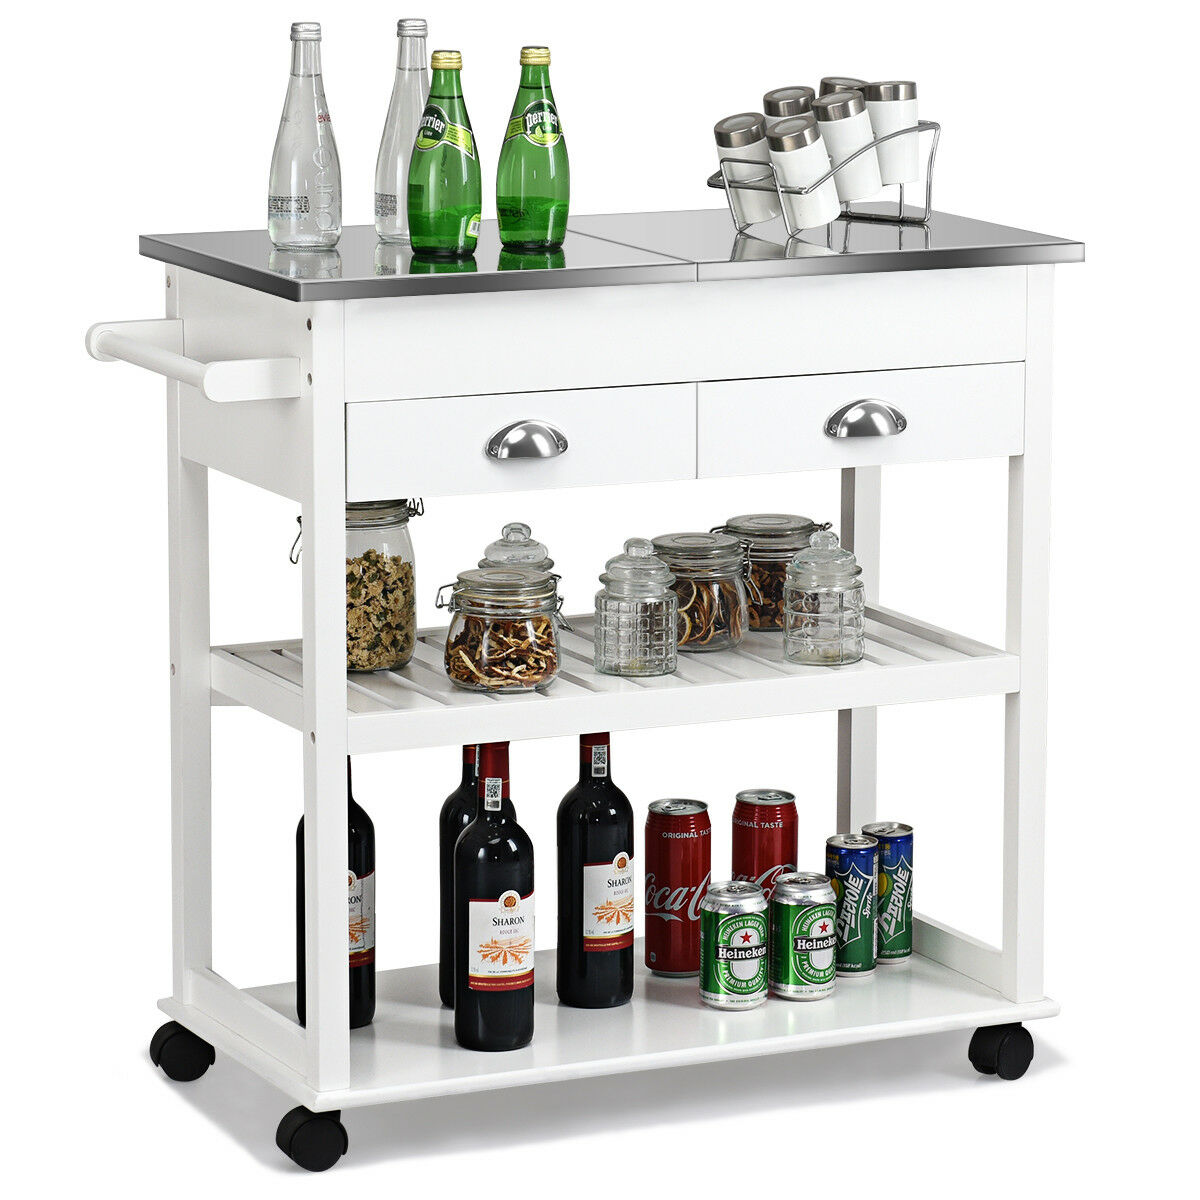 kitchen trolley cart how to make cabinet doors from plywood mobile stainless steel flip tabletop w drawers casters new walmart com